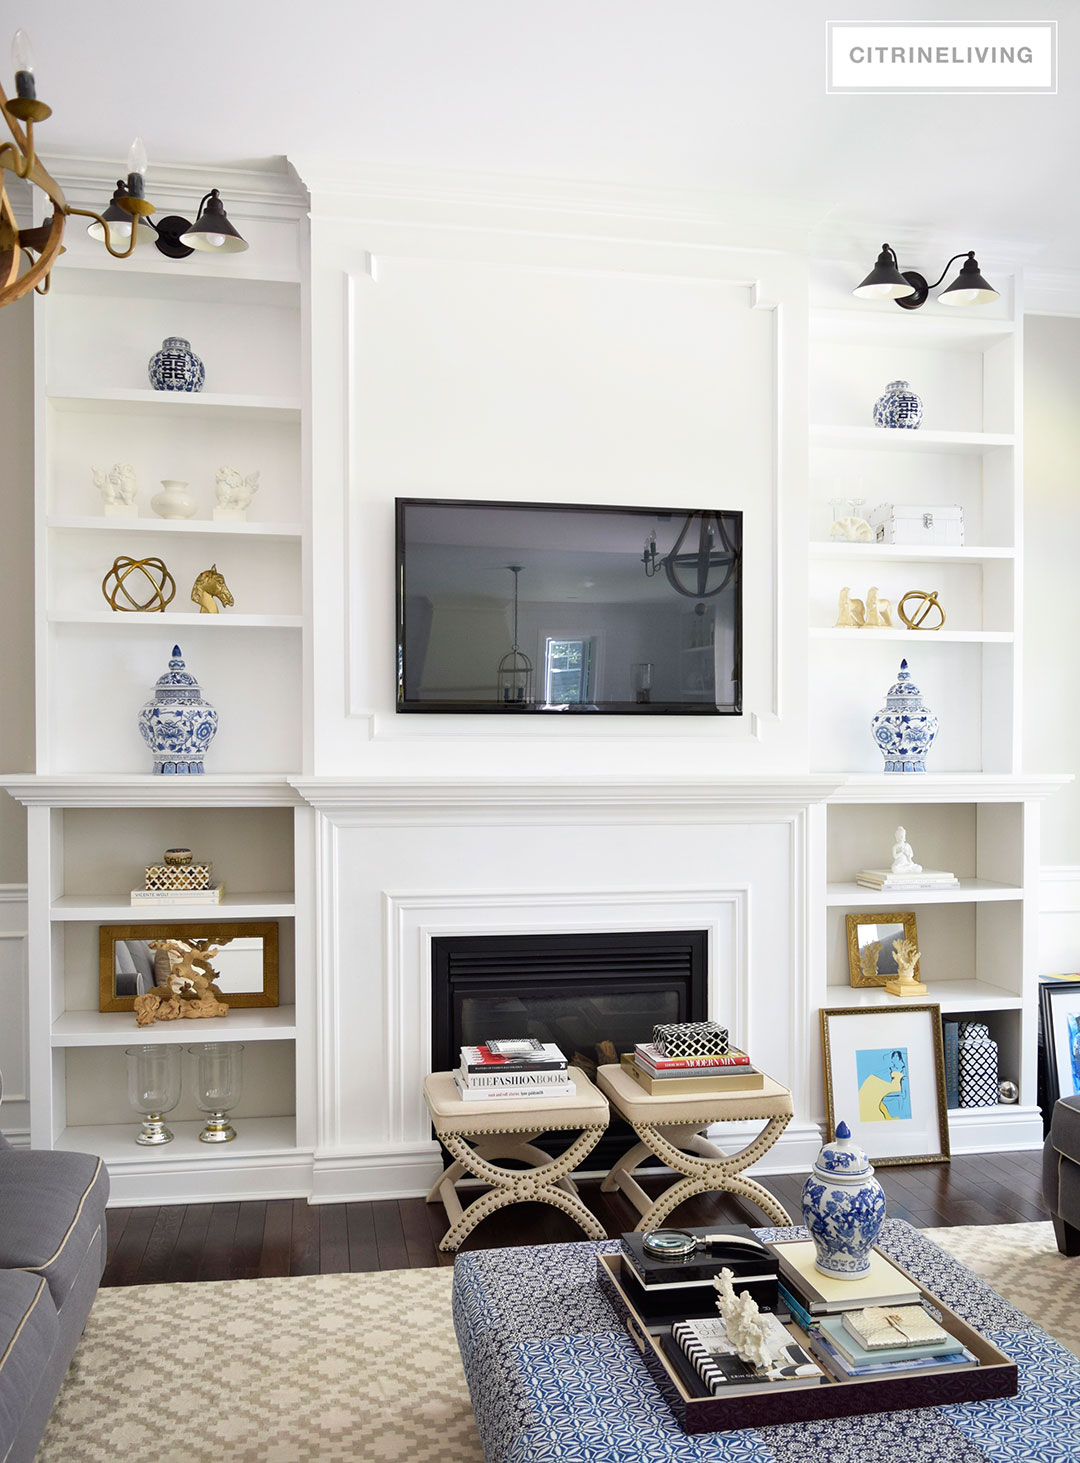 CITRINELIVING : LIVING ROOM BOOKSHELVES